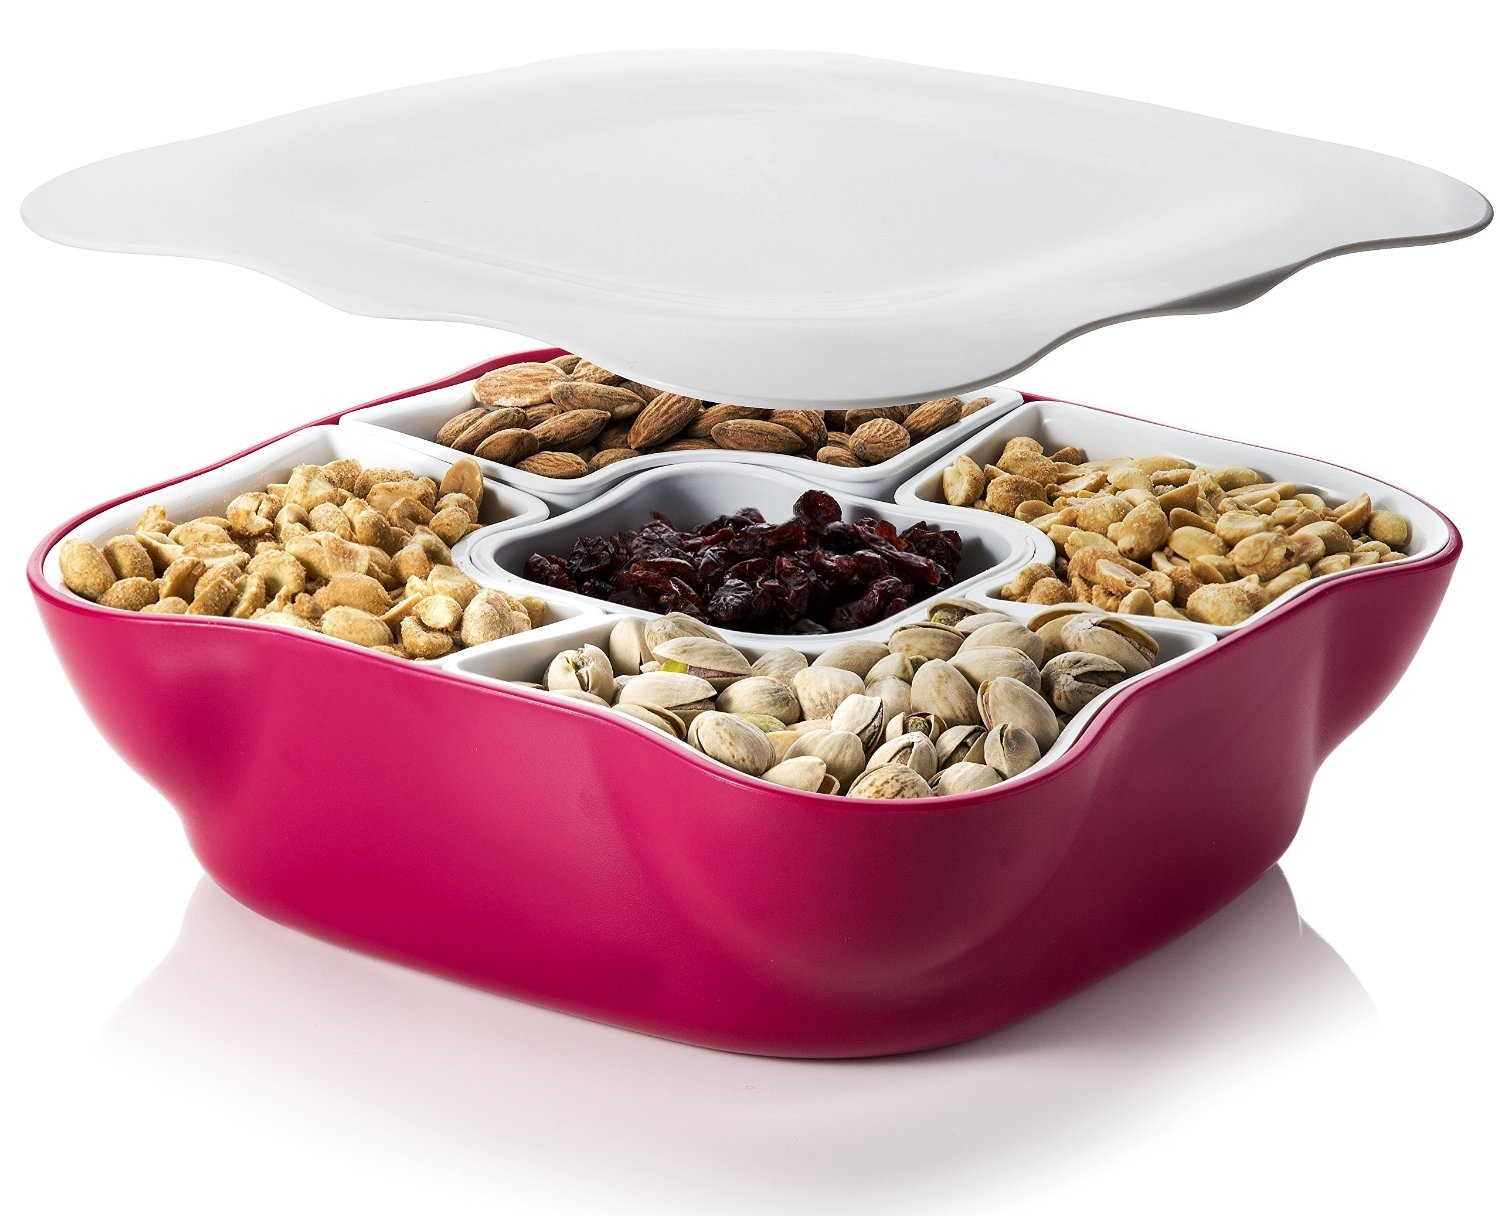 Snack serving tray-1